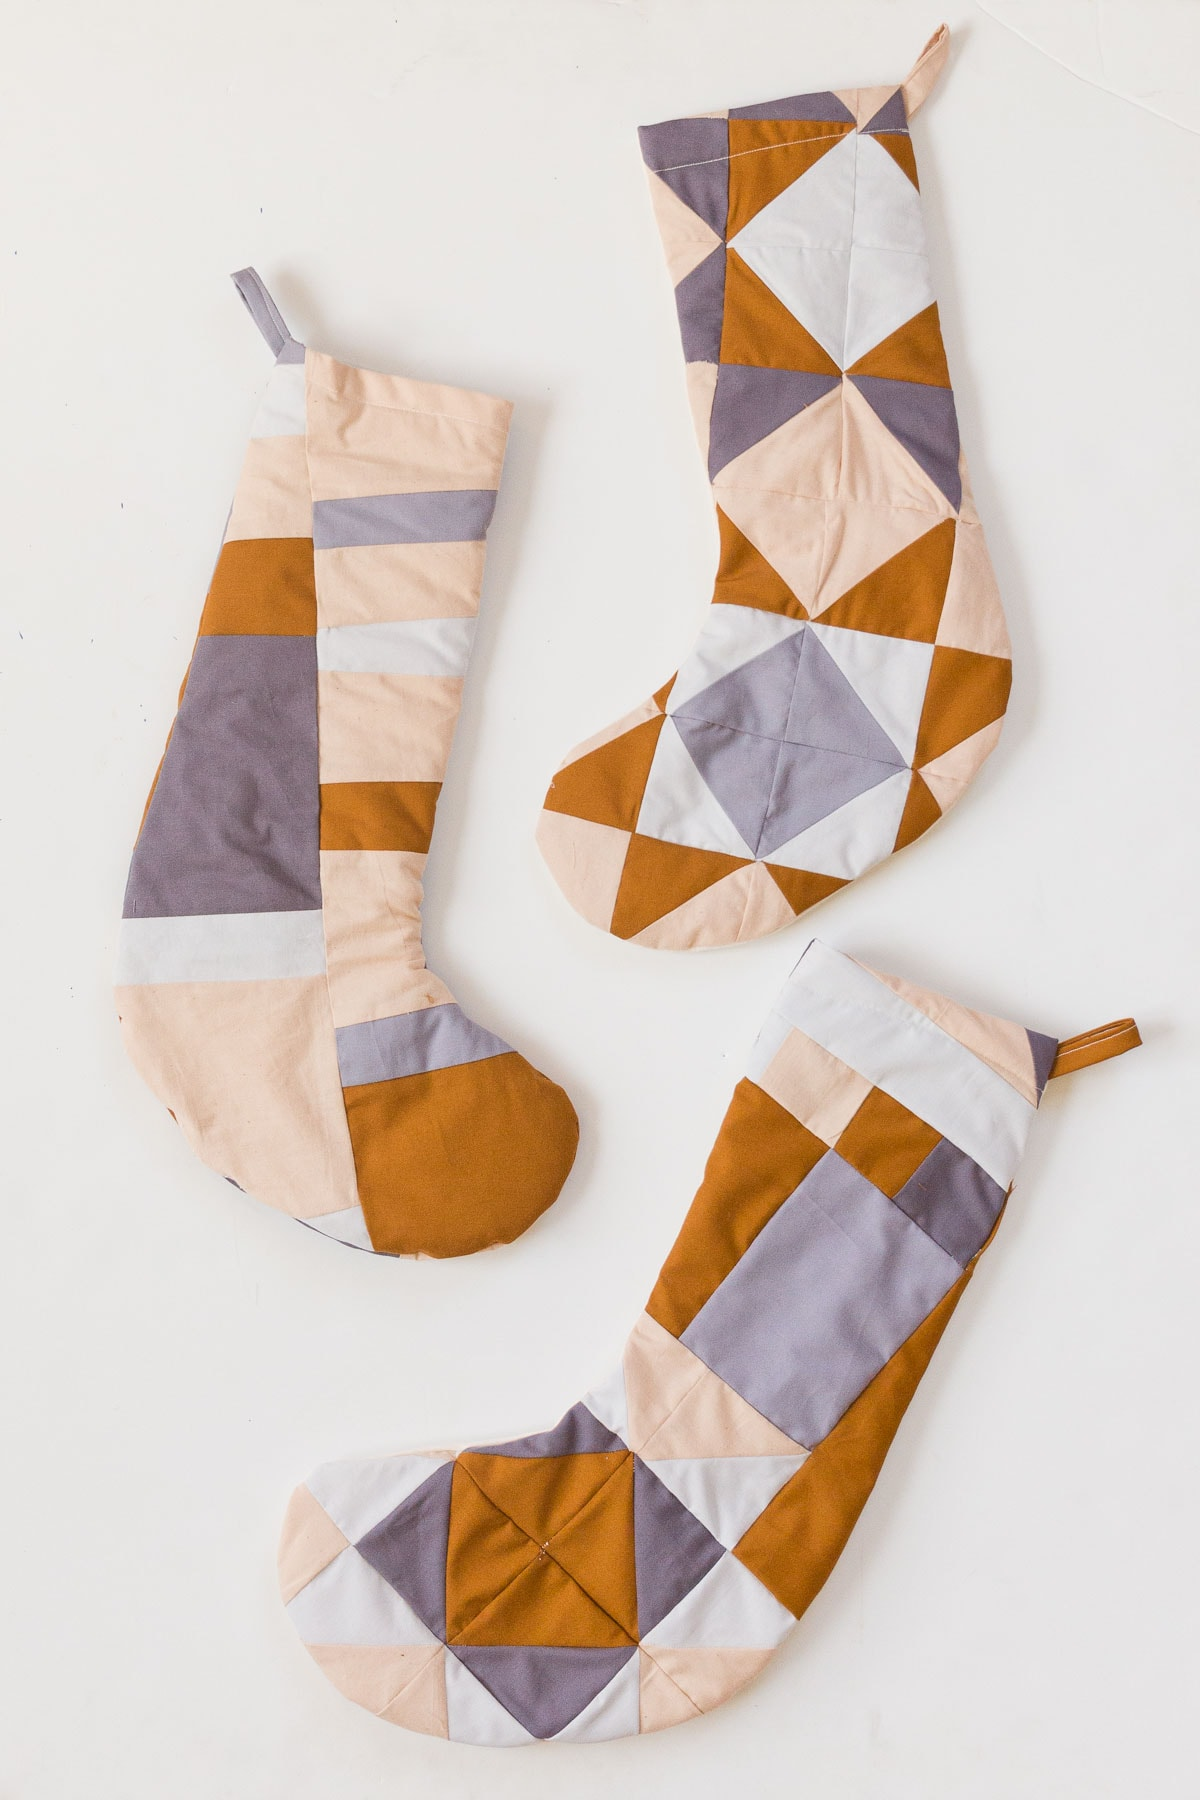 Earth-toned Christmas stockings in various quilted patterns.